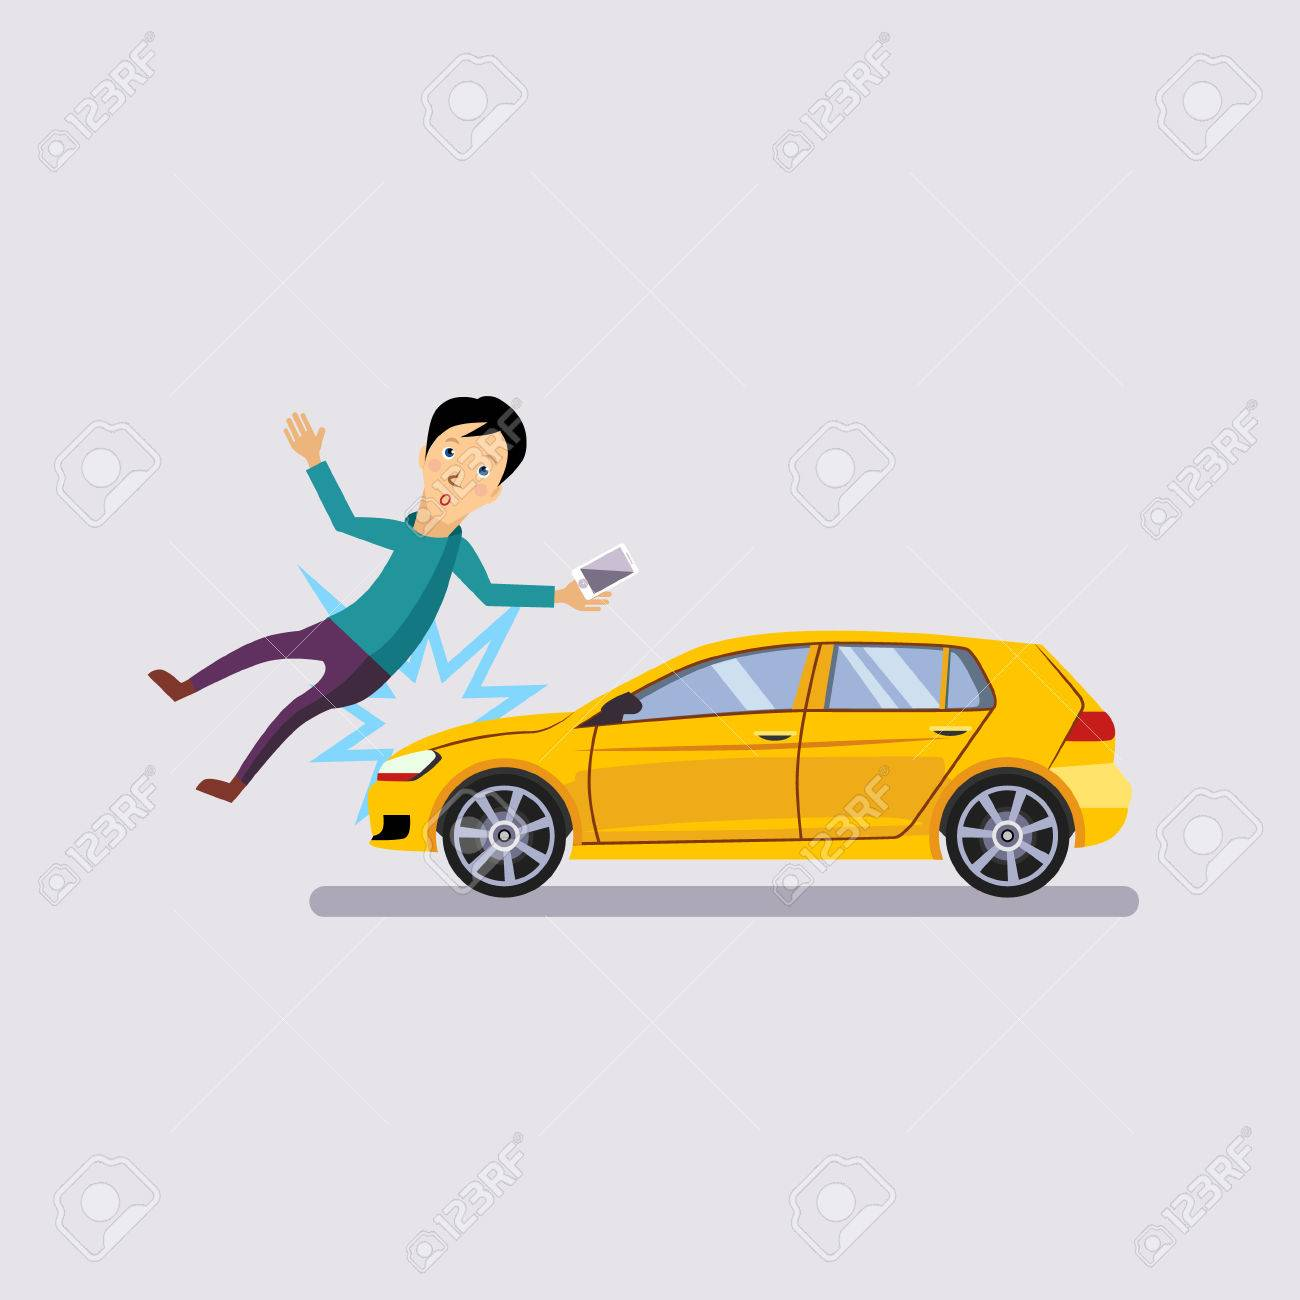 Traffic Accident, The Vehicle Knocked The Man Flat Style Vector ...